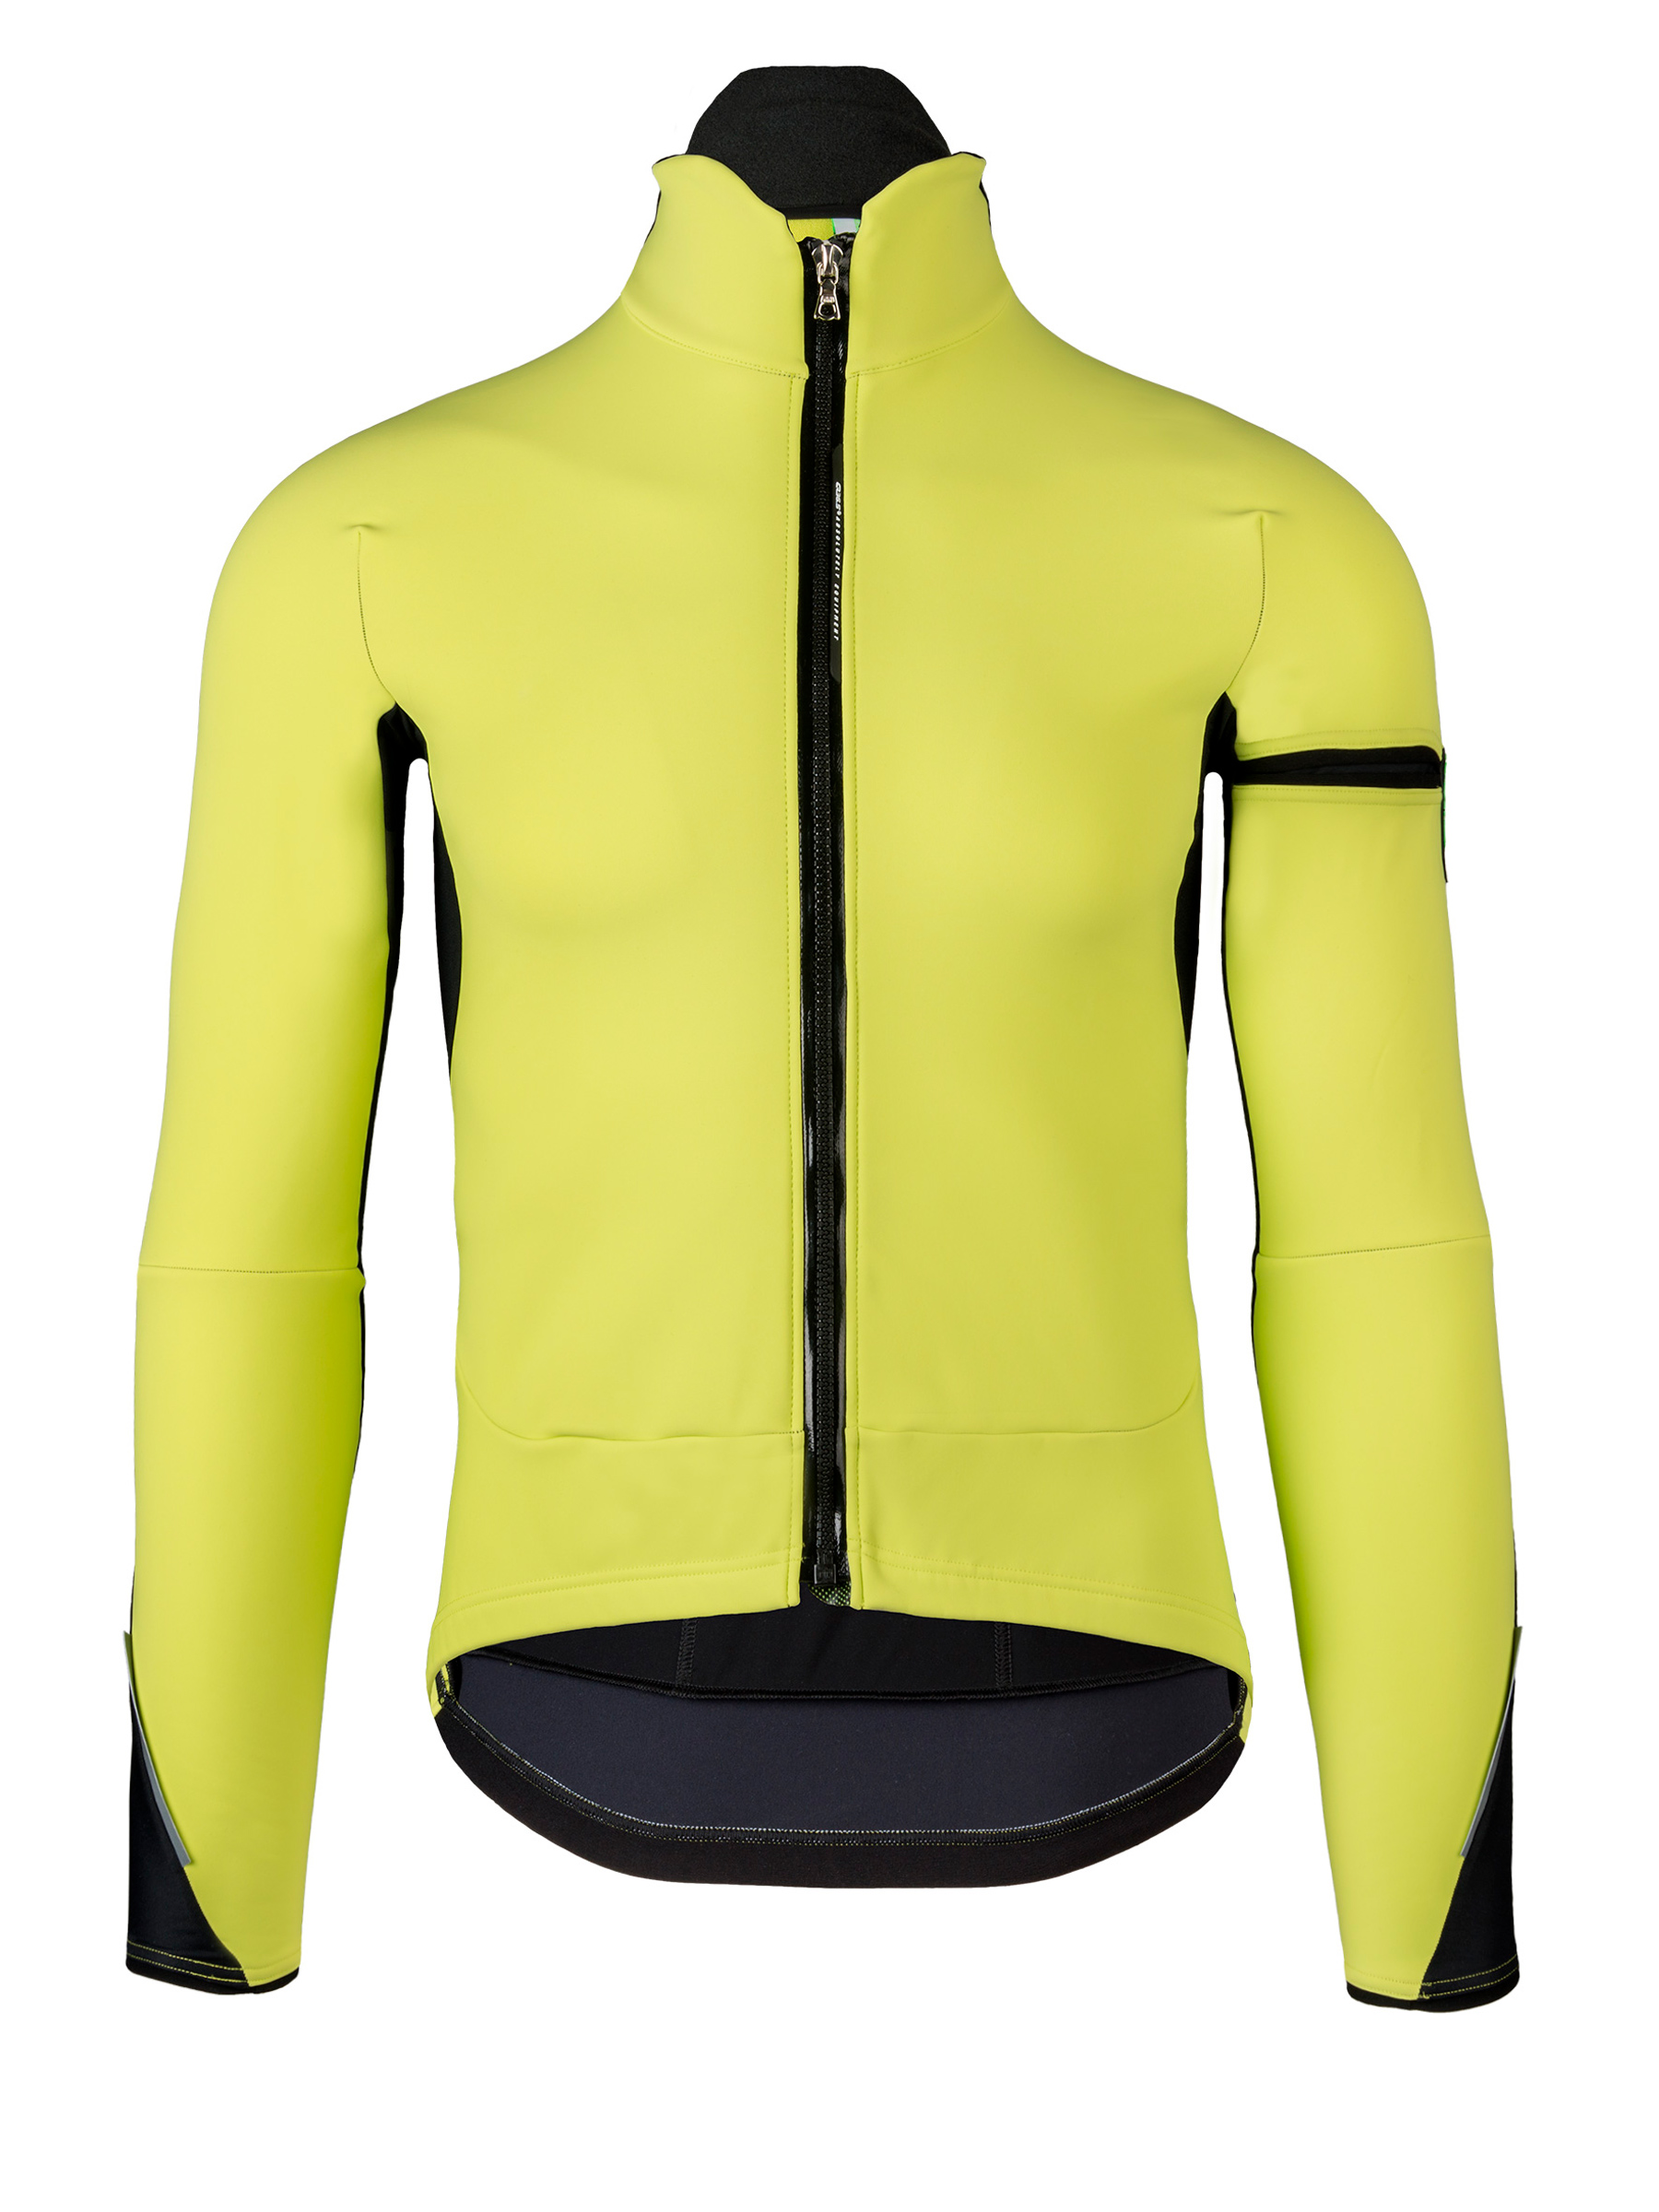 Mens cycling jacket Termica Jacket Q36.5 yellow Q36.5